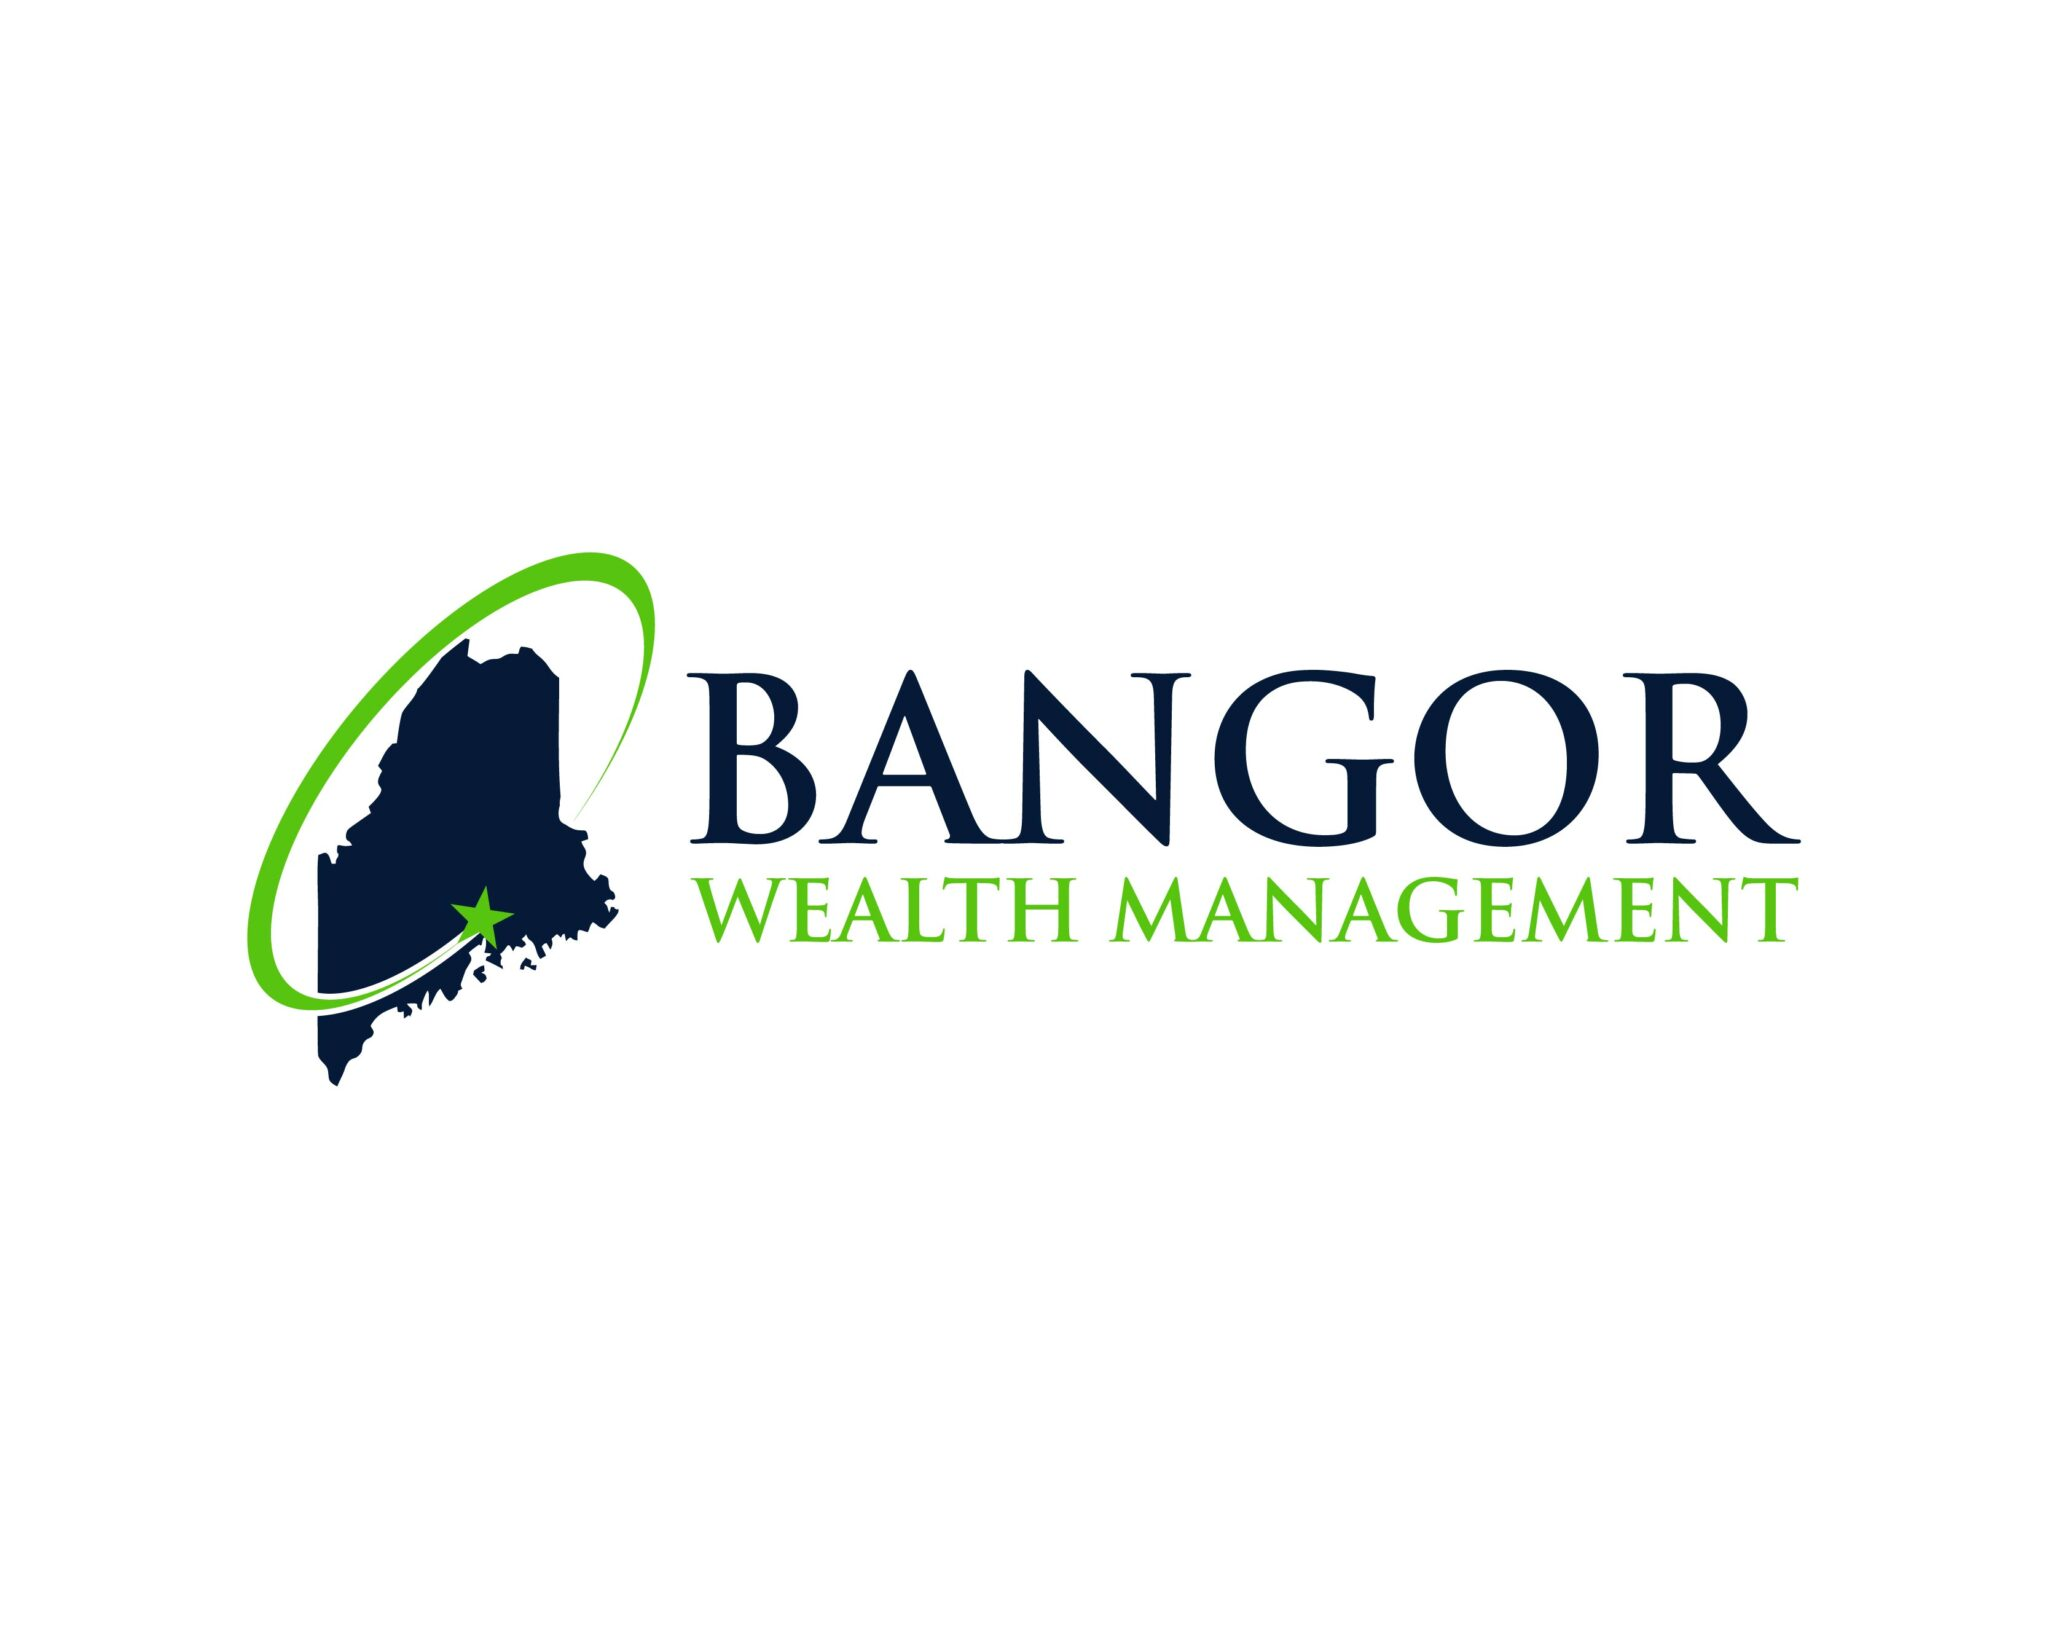 bangor-wealth-management